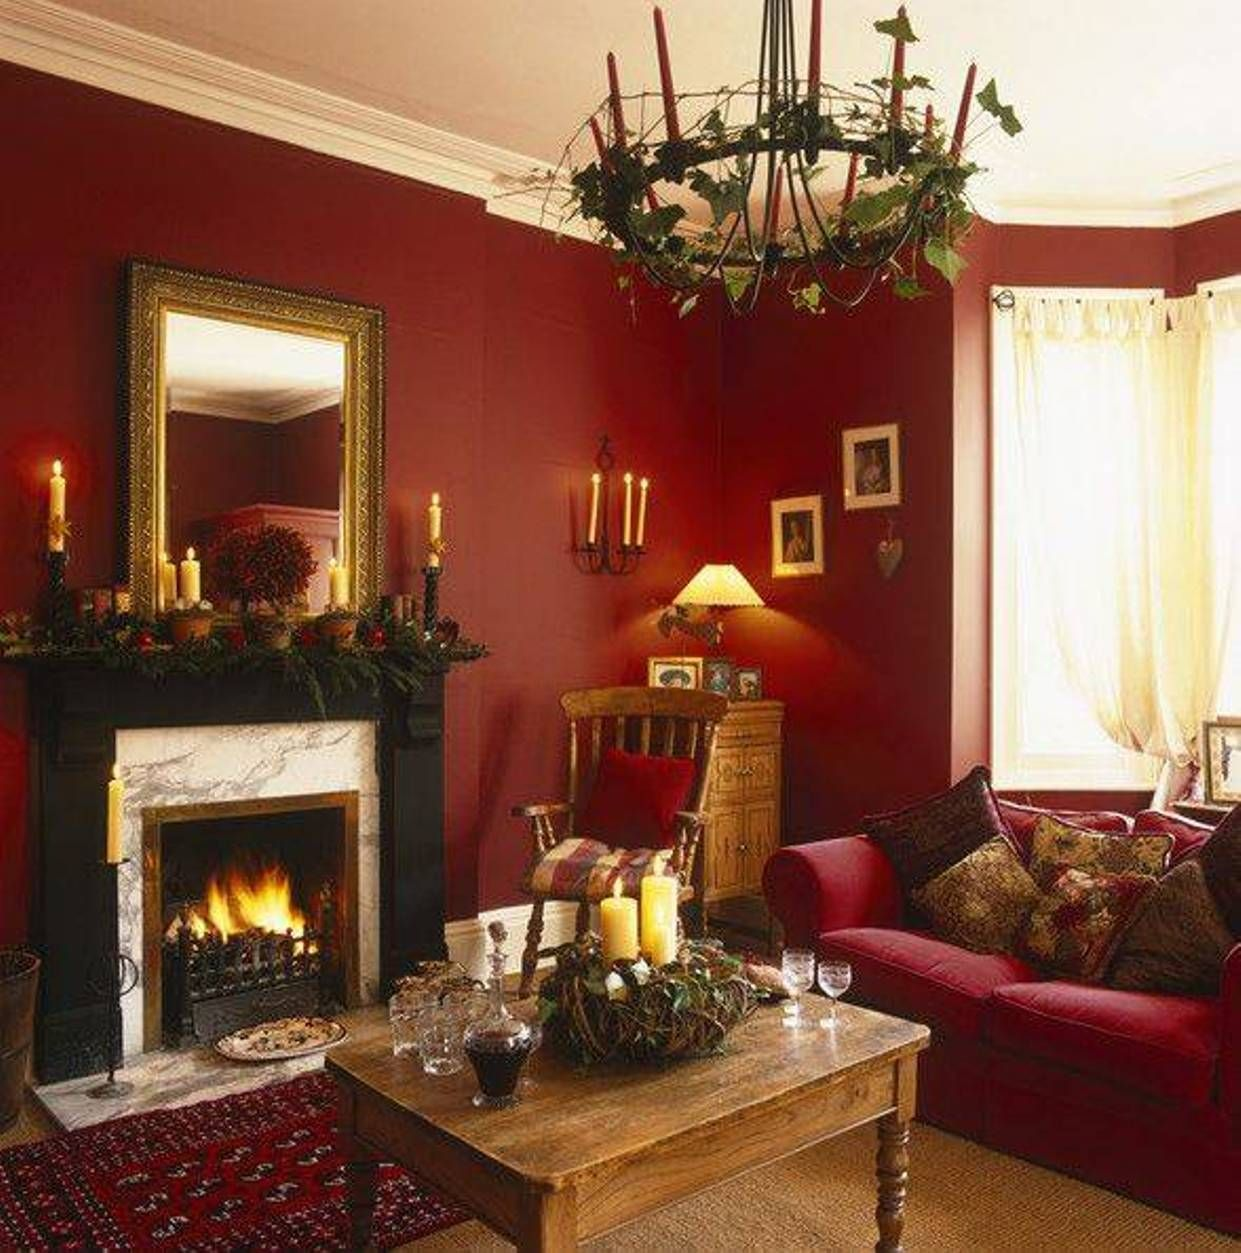 Maroon Grey And White Living Room: Red Gold Brown Color Scheme - Google Search